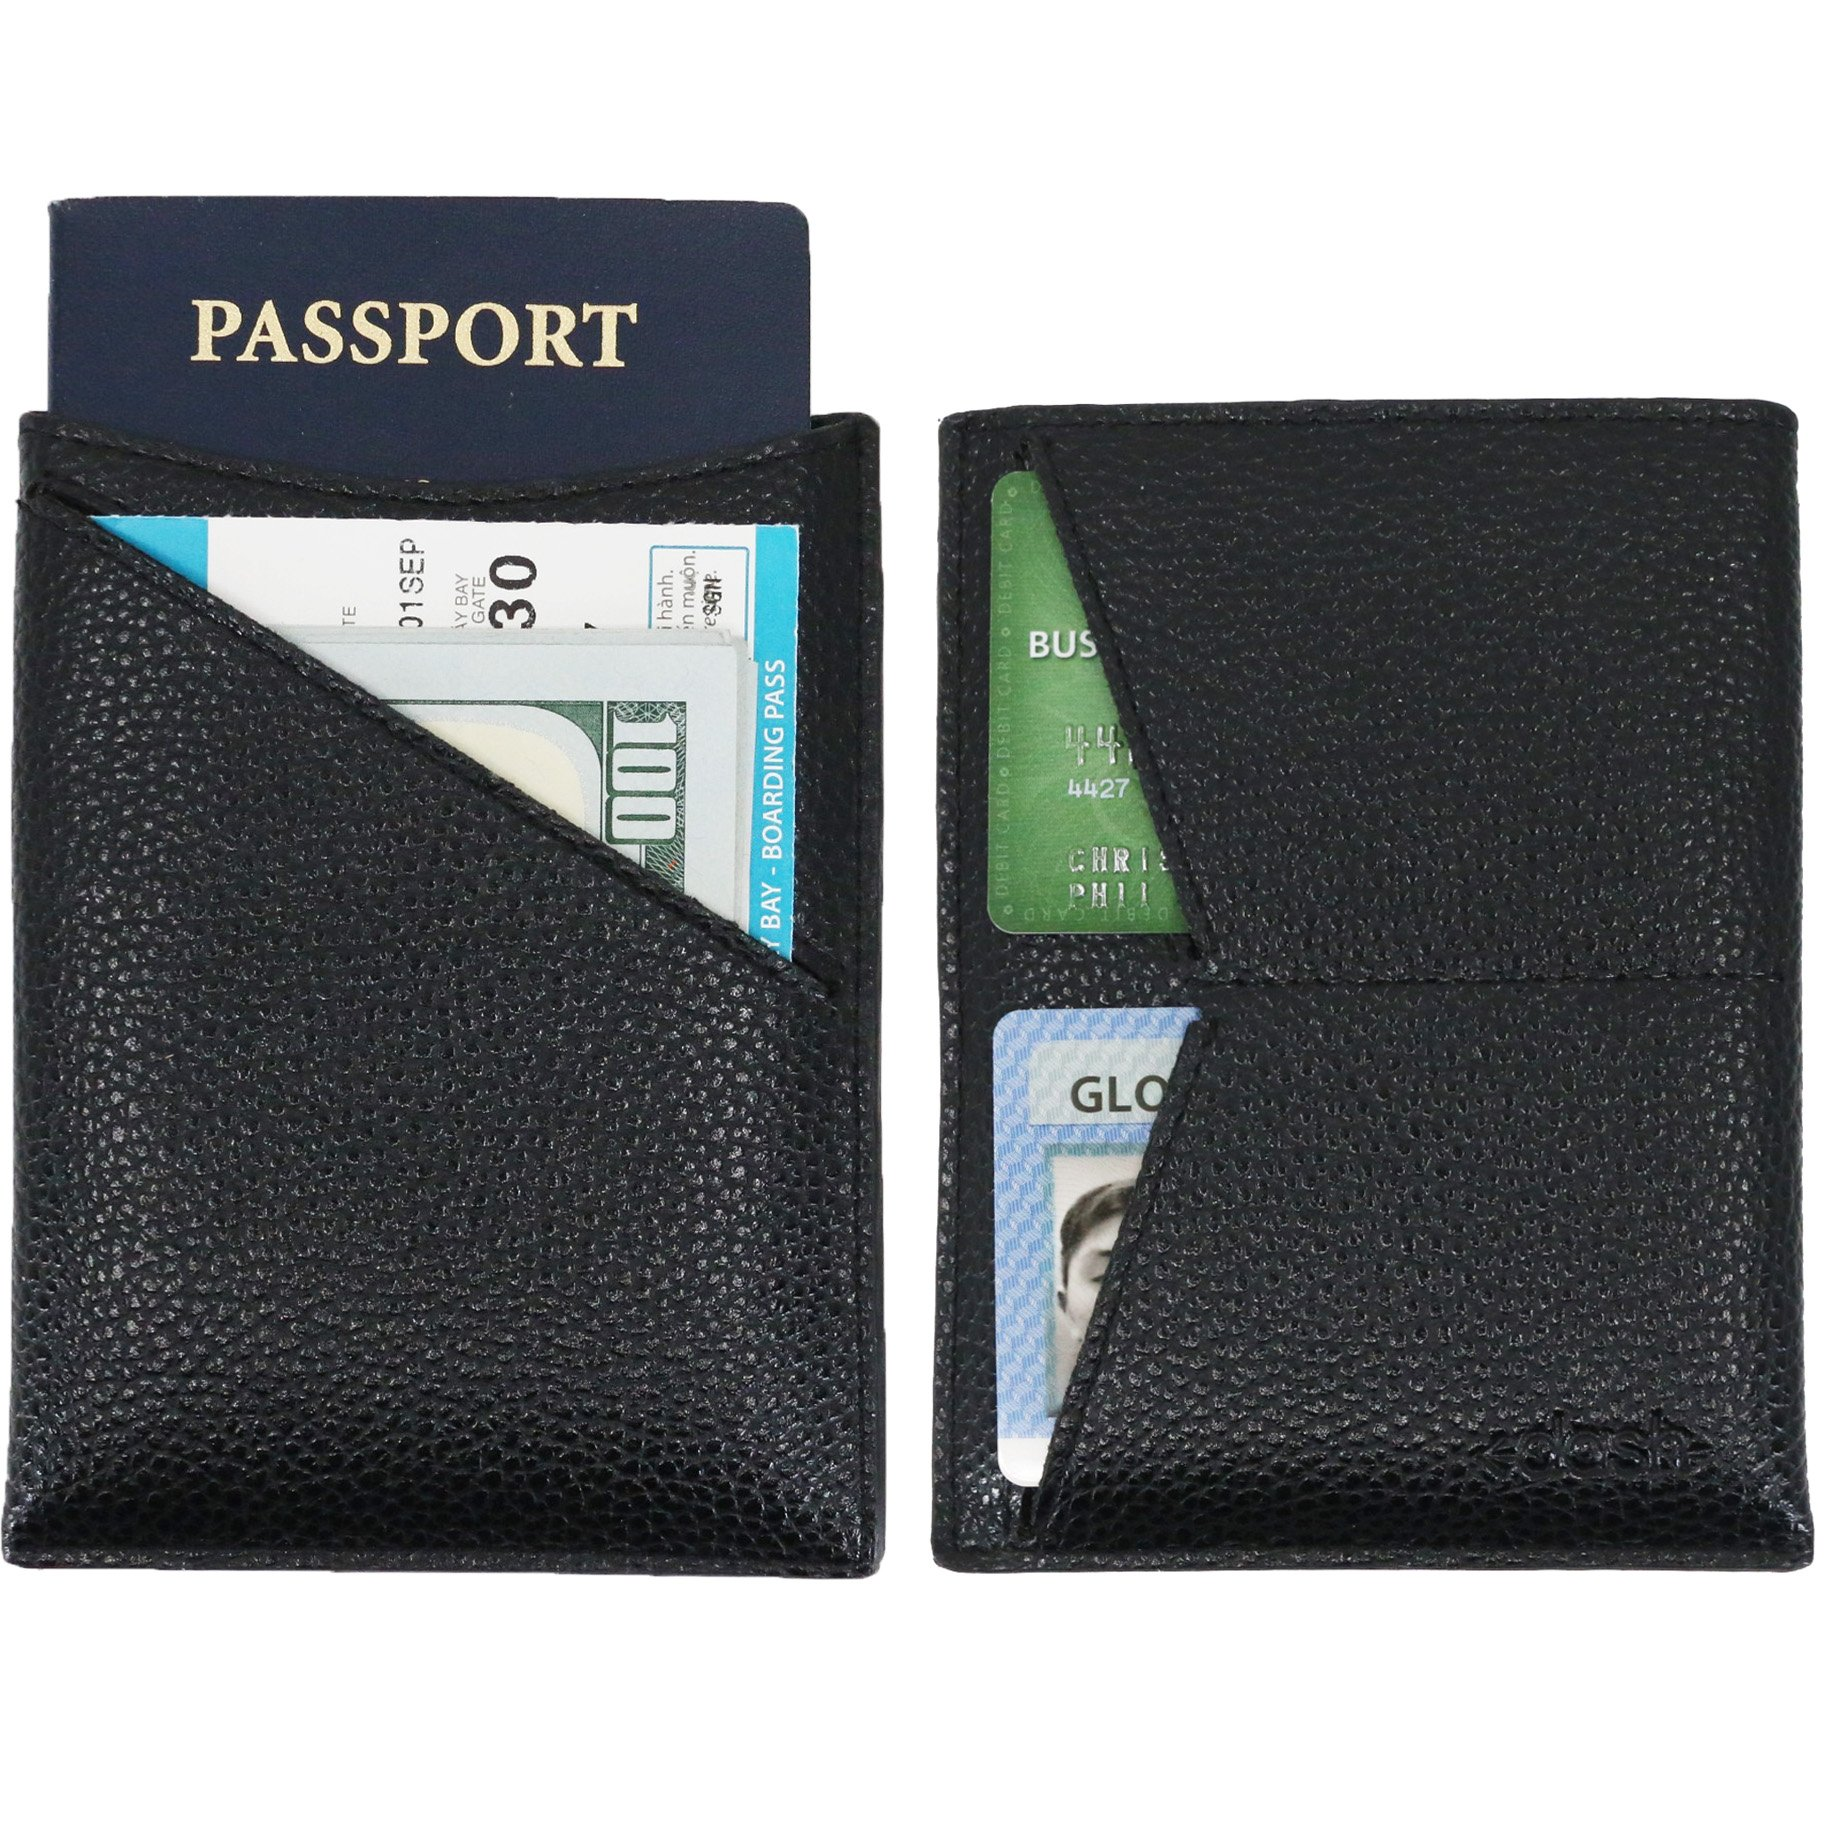 Dash Co. Passport Wallet : Minimalist RFID Sleeve for Travel Stops Electronic Pick Pocketing Works Against Identity Theft & Credit Card Data Breach (Classic Leather) by Dash Wallets